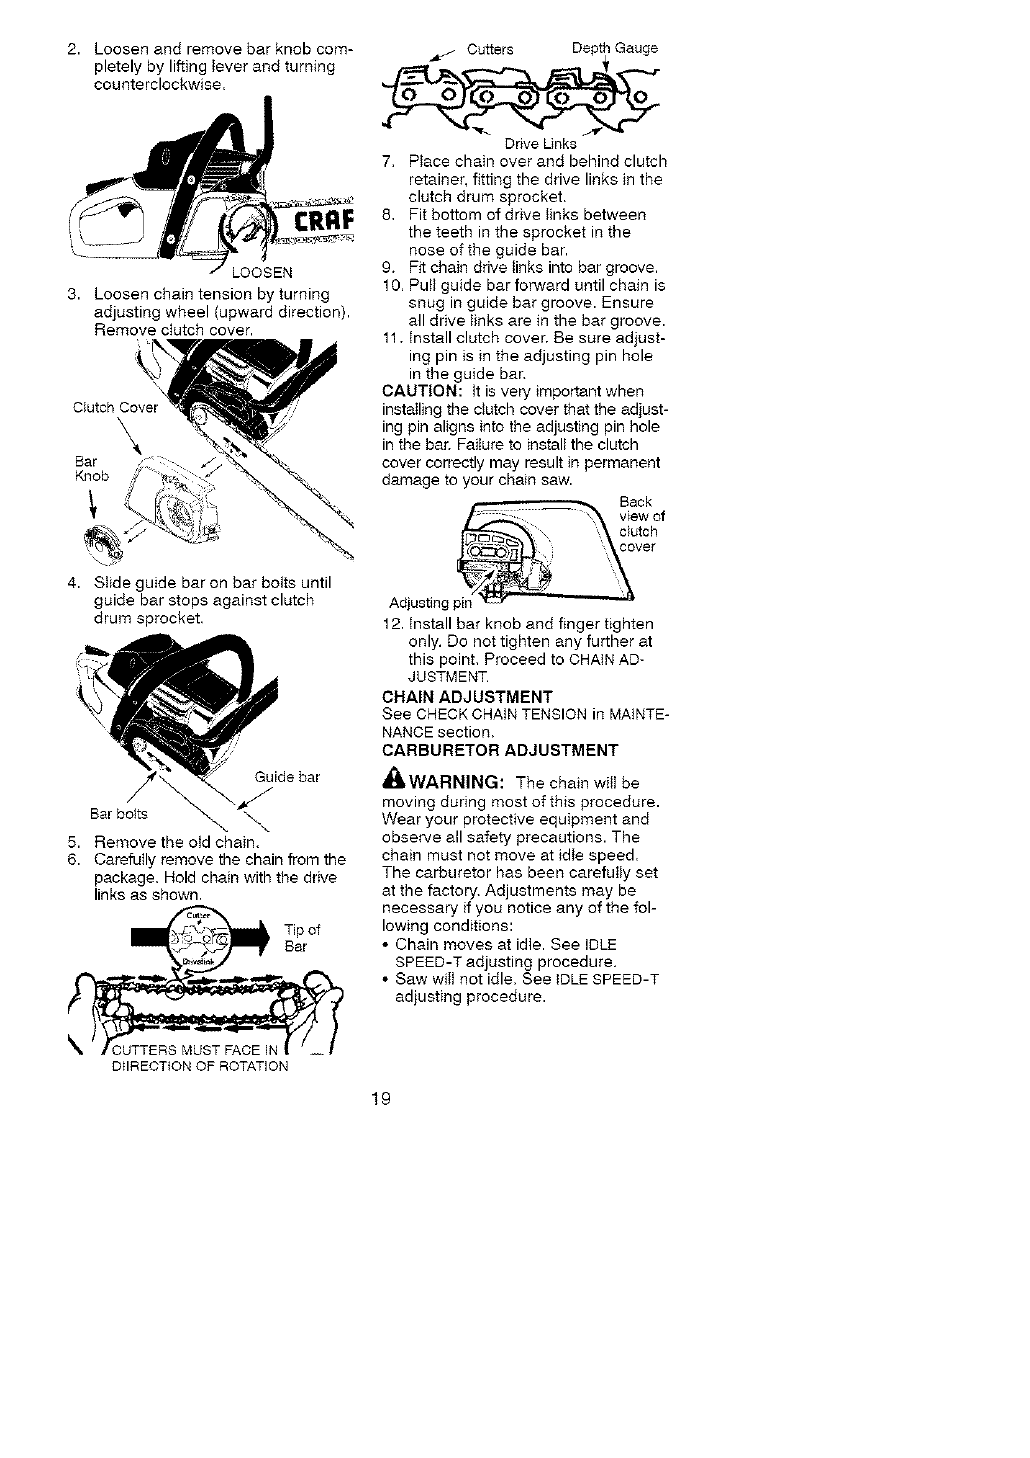 Page 19 of Craftsman Chainsaw 358.35181 User Guide